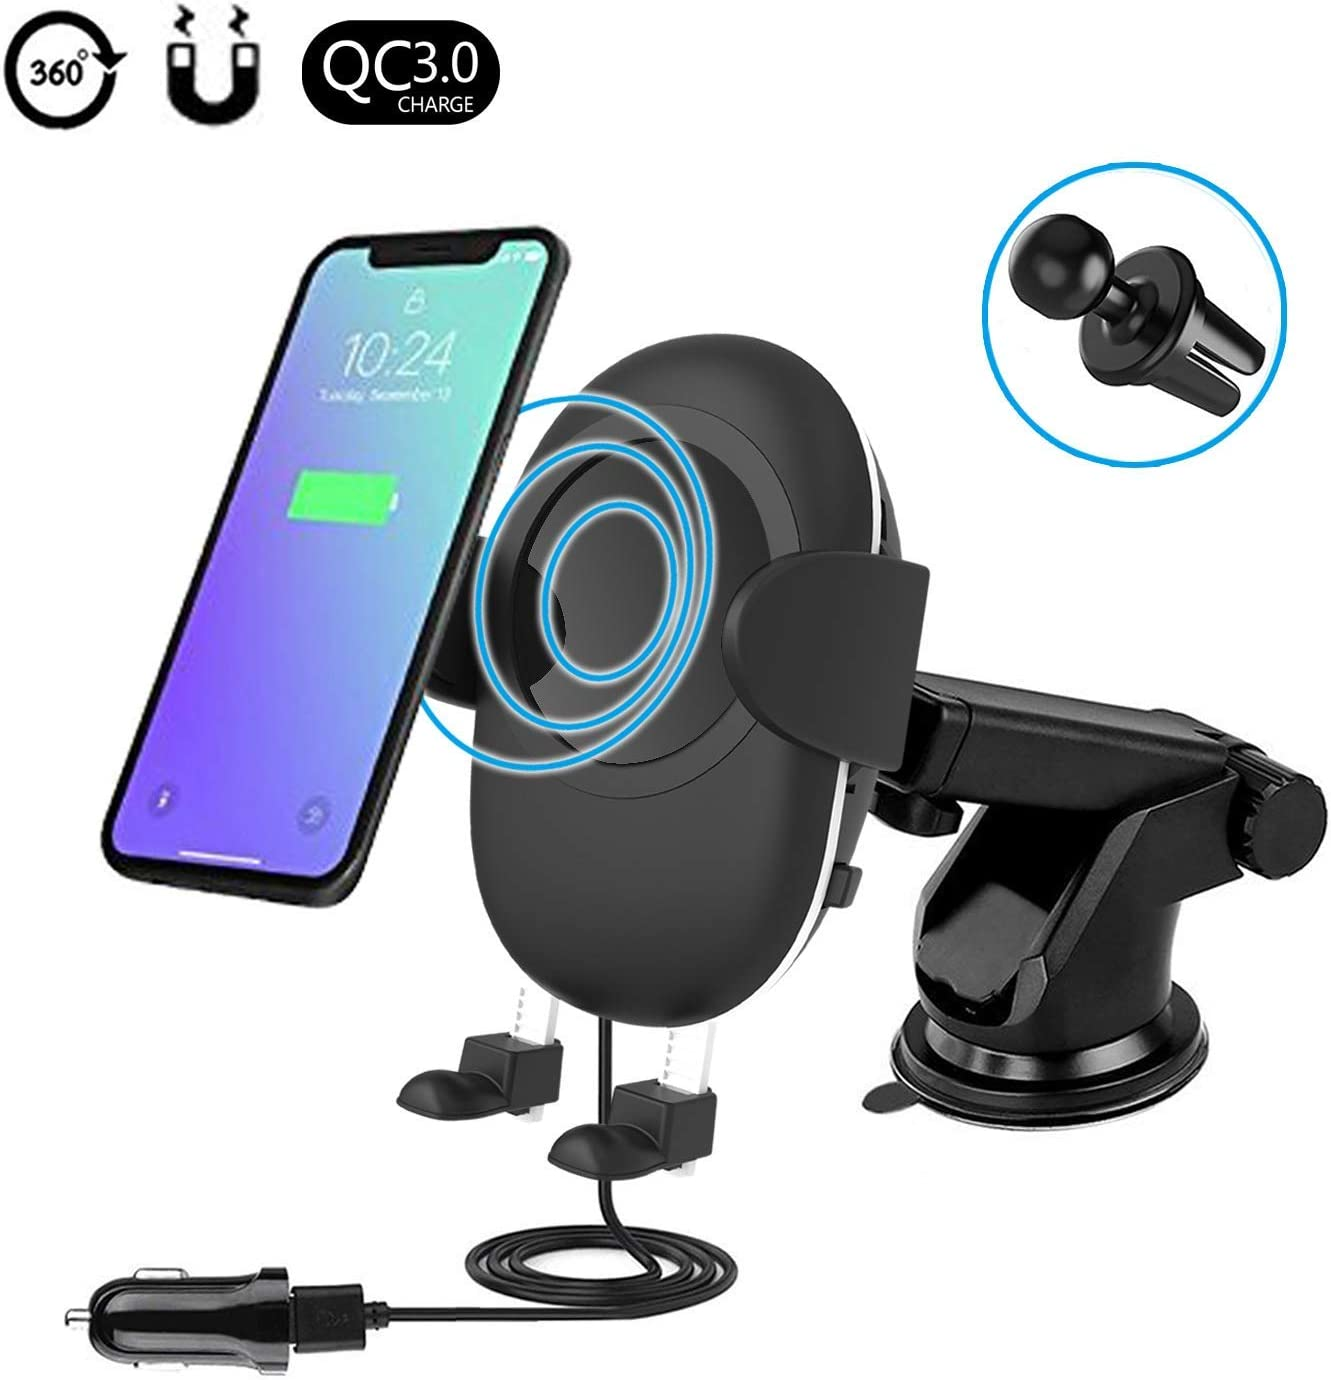 8//8 Plus Qi Enabled Devices Wireless Fast Car Charger Easy One Touch 2 in 1 Air Vent Mount Phone Holder Cradle for Samsung Galaxy S9 S9 Plus S8 /& Standard Charge for iPhone X